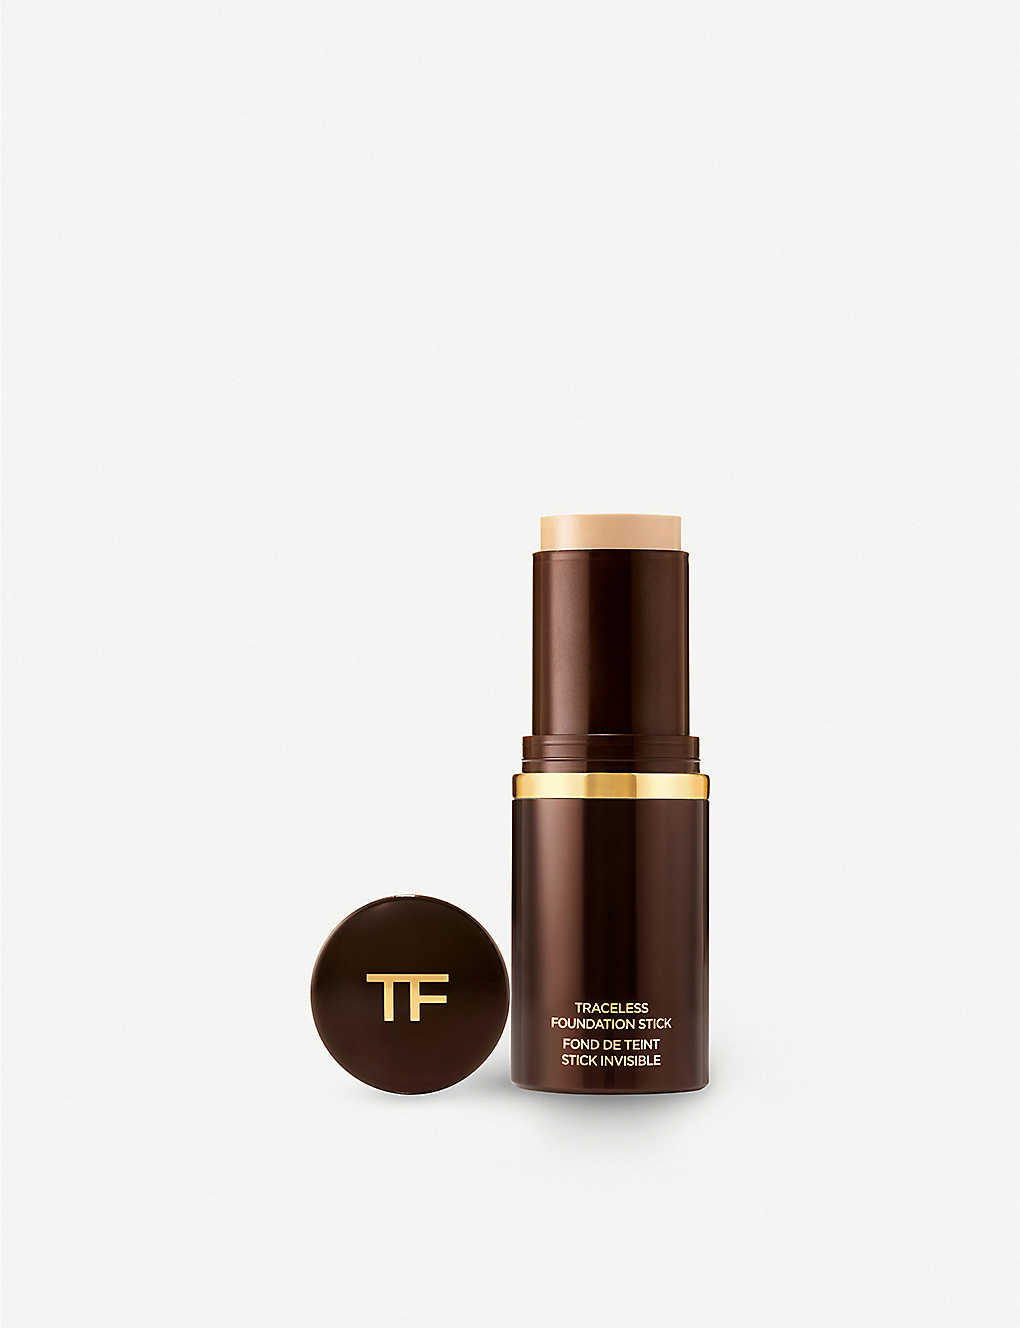 TOM FORD: Traceless Foundation Stick 15g